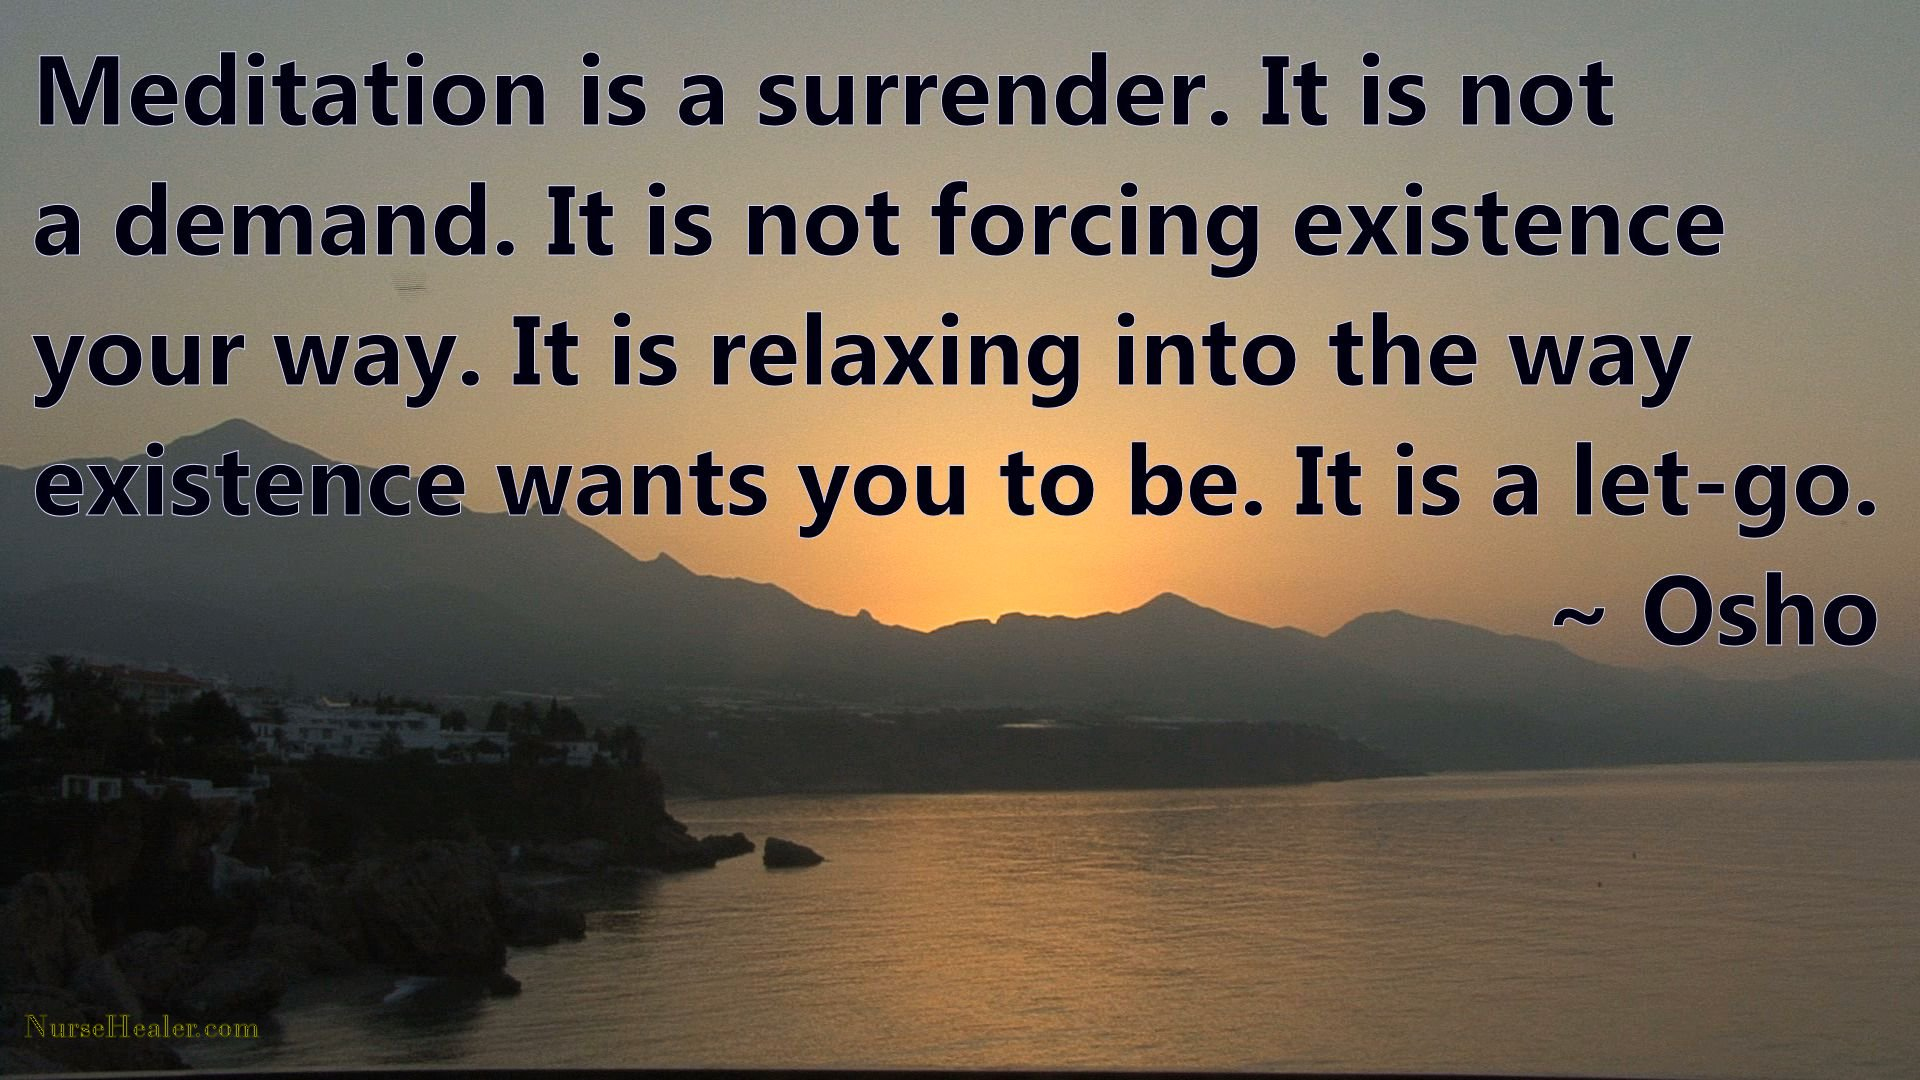 Meditation is a surrender